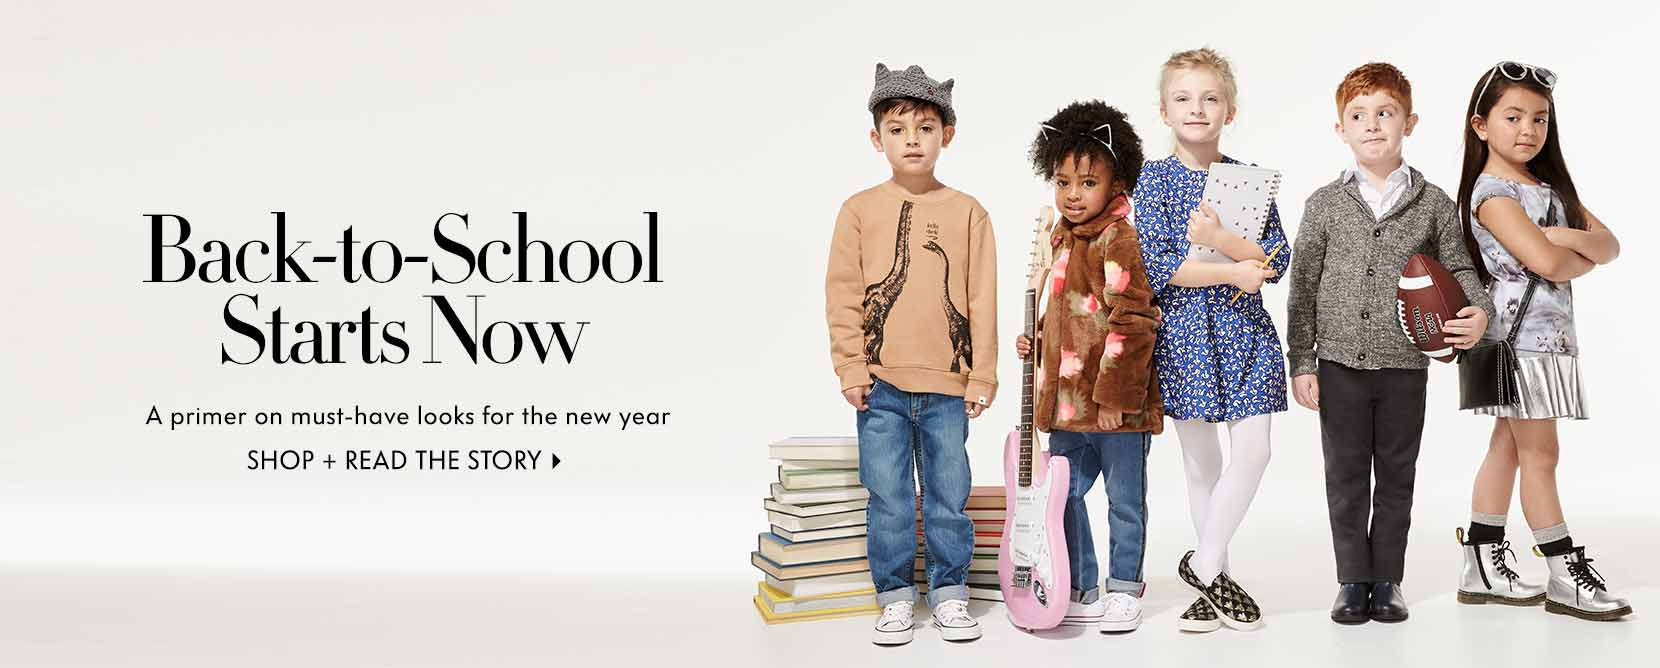 Back-to-School Starts Now A primer on must-have looks for the new year Shop + read the story